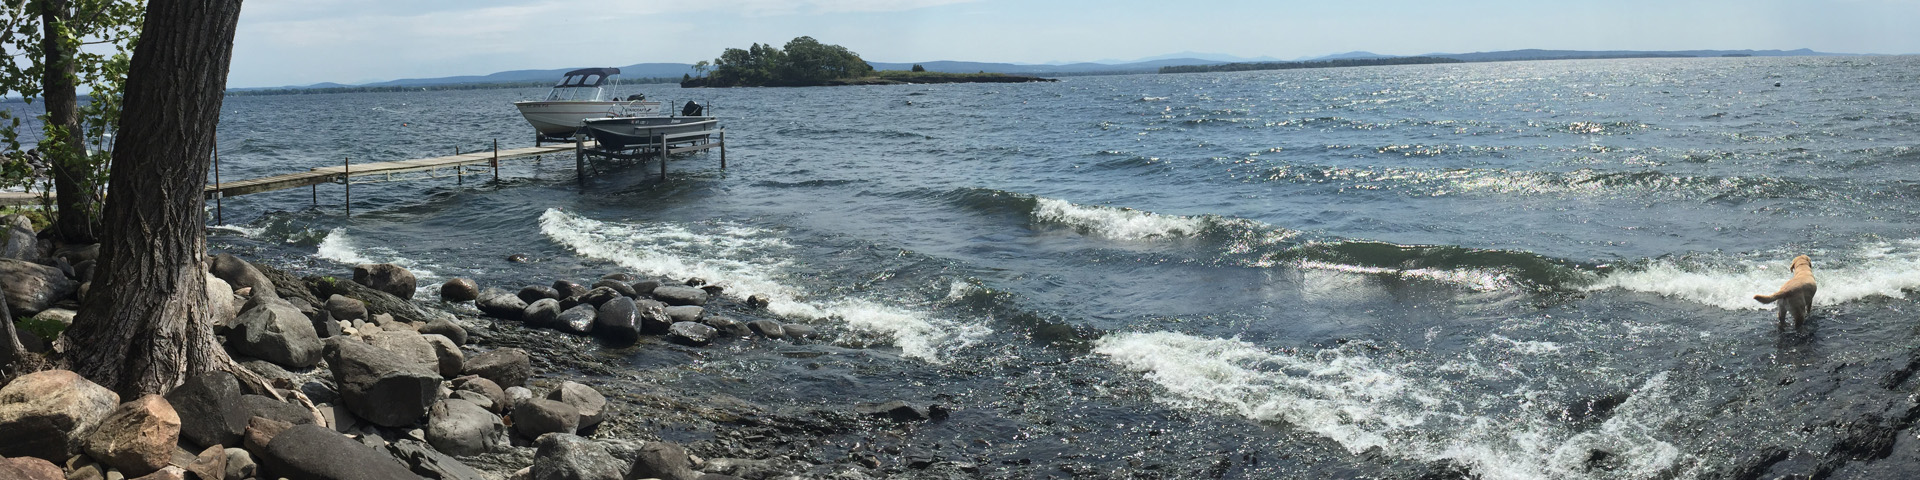 The waves roll in on Lake Champlain. A yellow Labrador Retriever stands in the waves; an island appears in the distance.